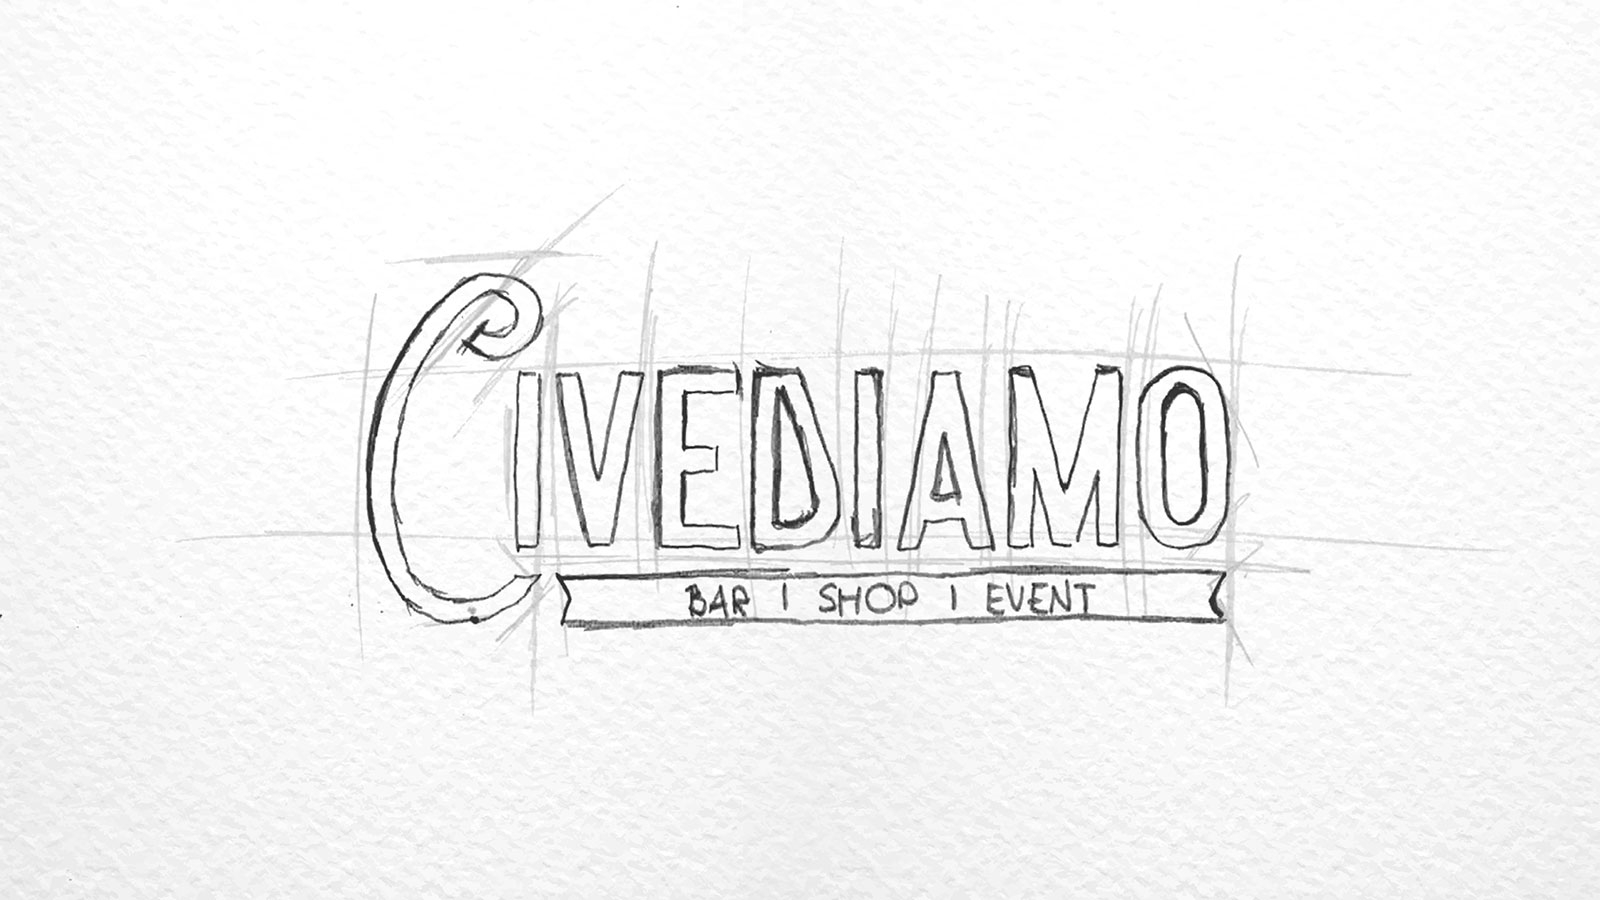 civediamo.at | 2018 (Logo Scribble 02) © echonet communication